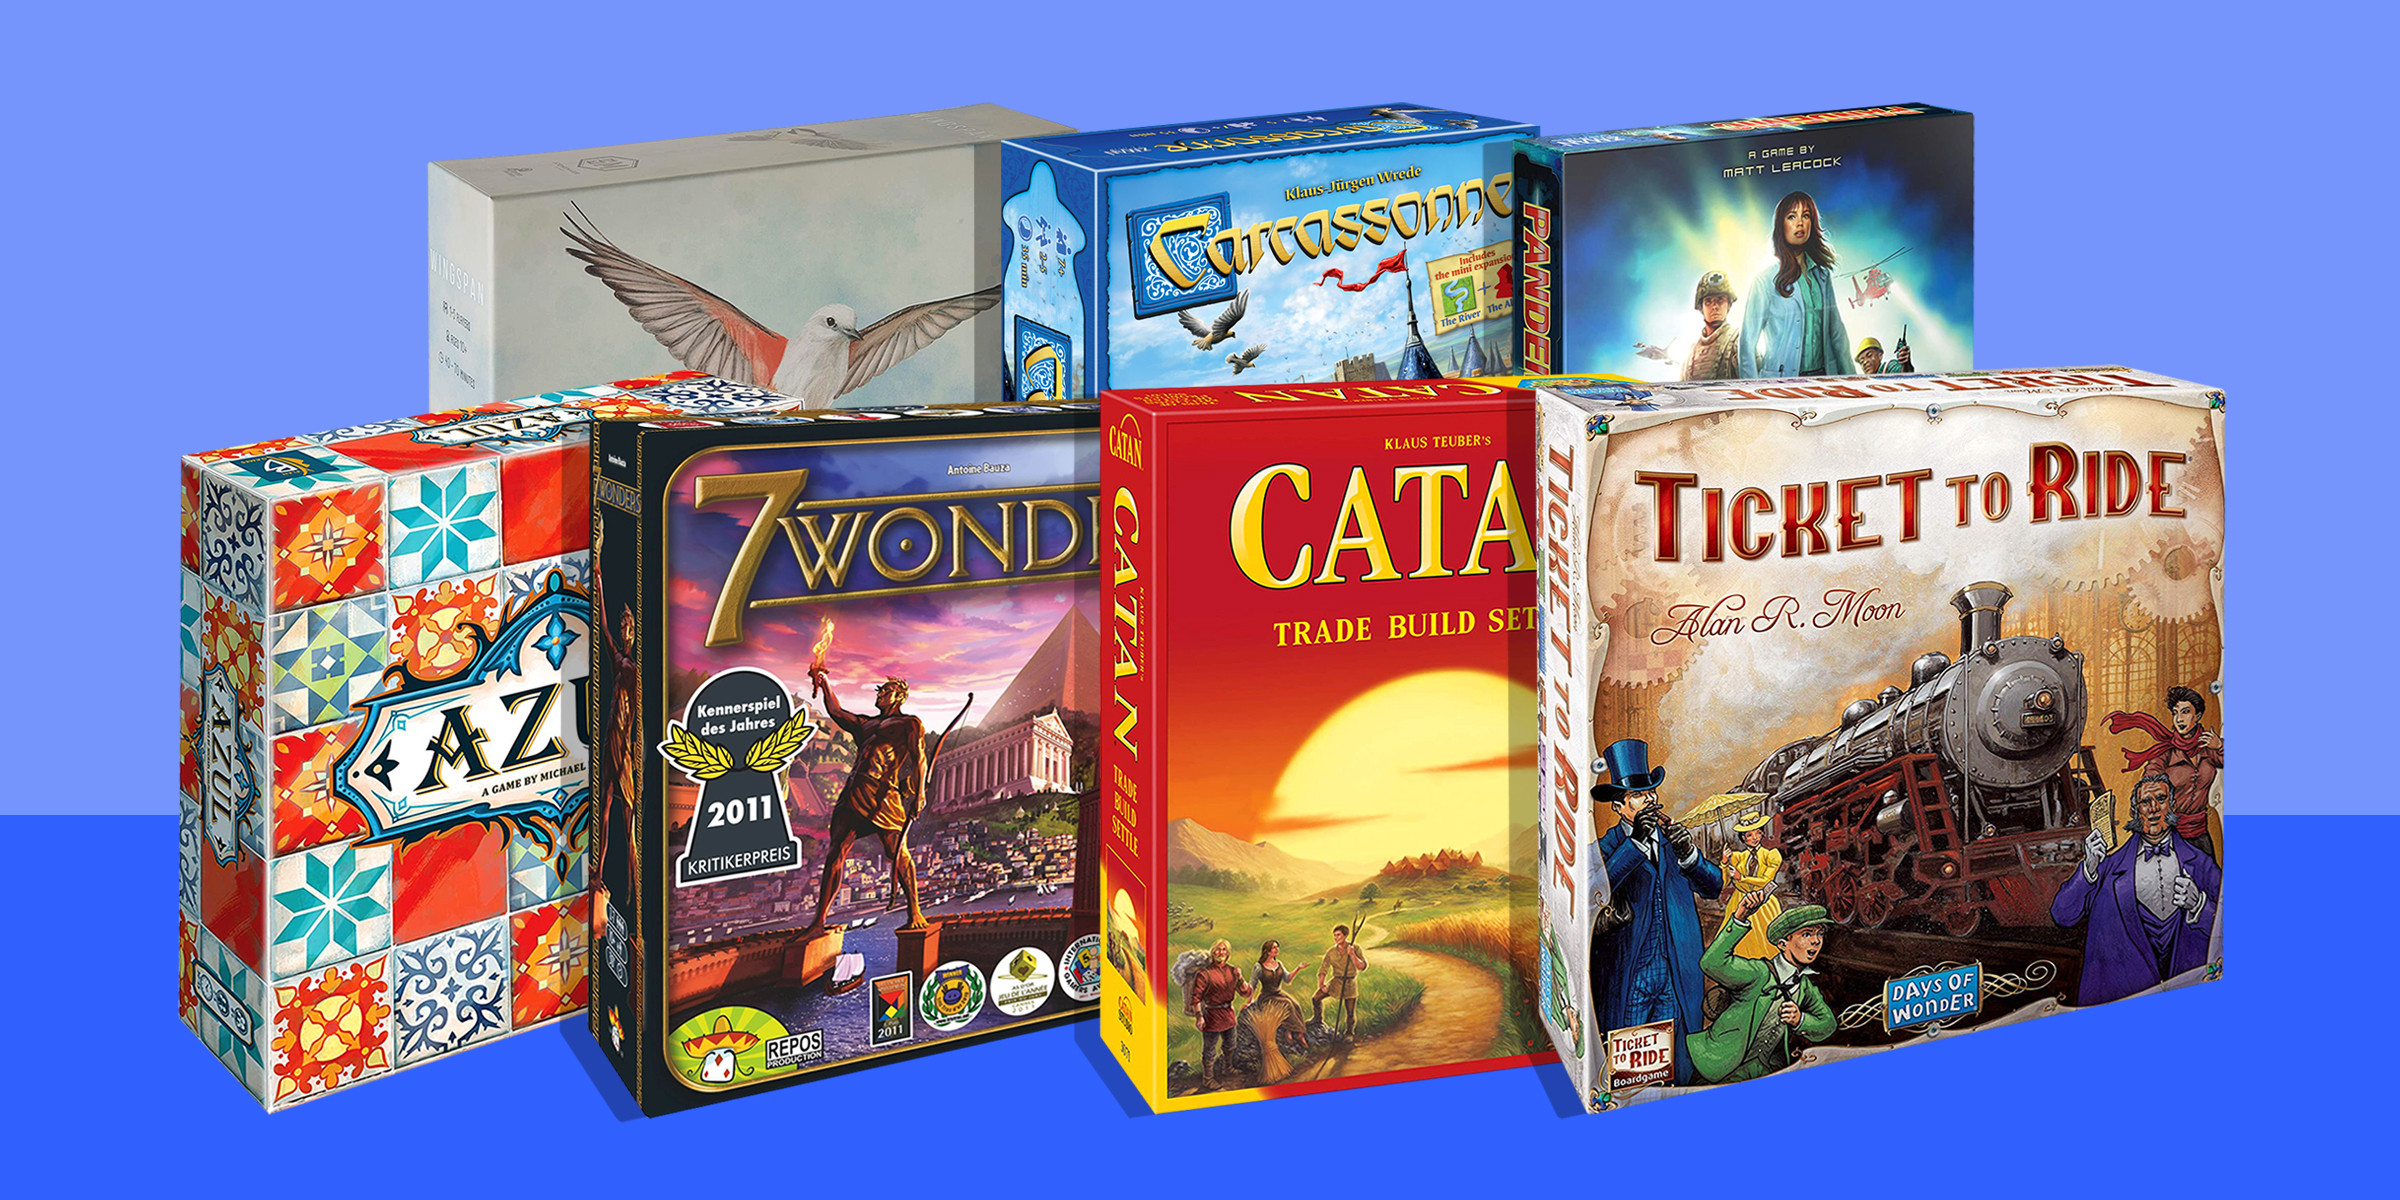 Best board games to play in quarantine, according to experts